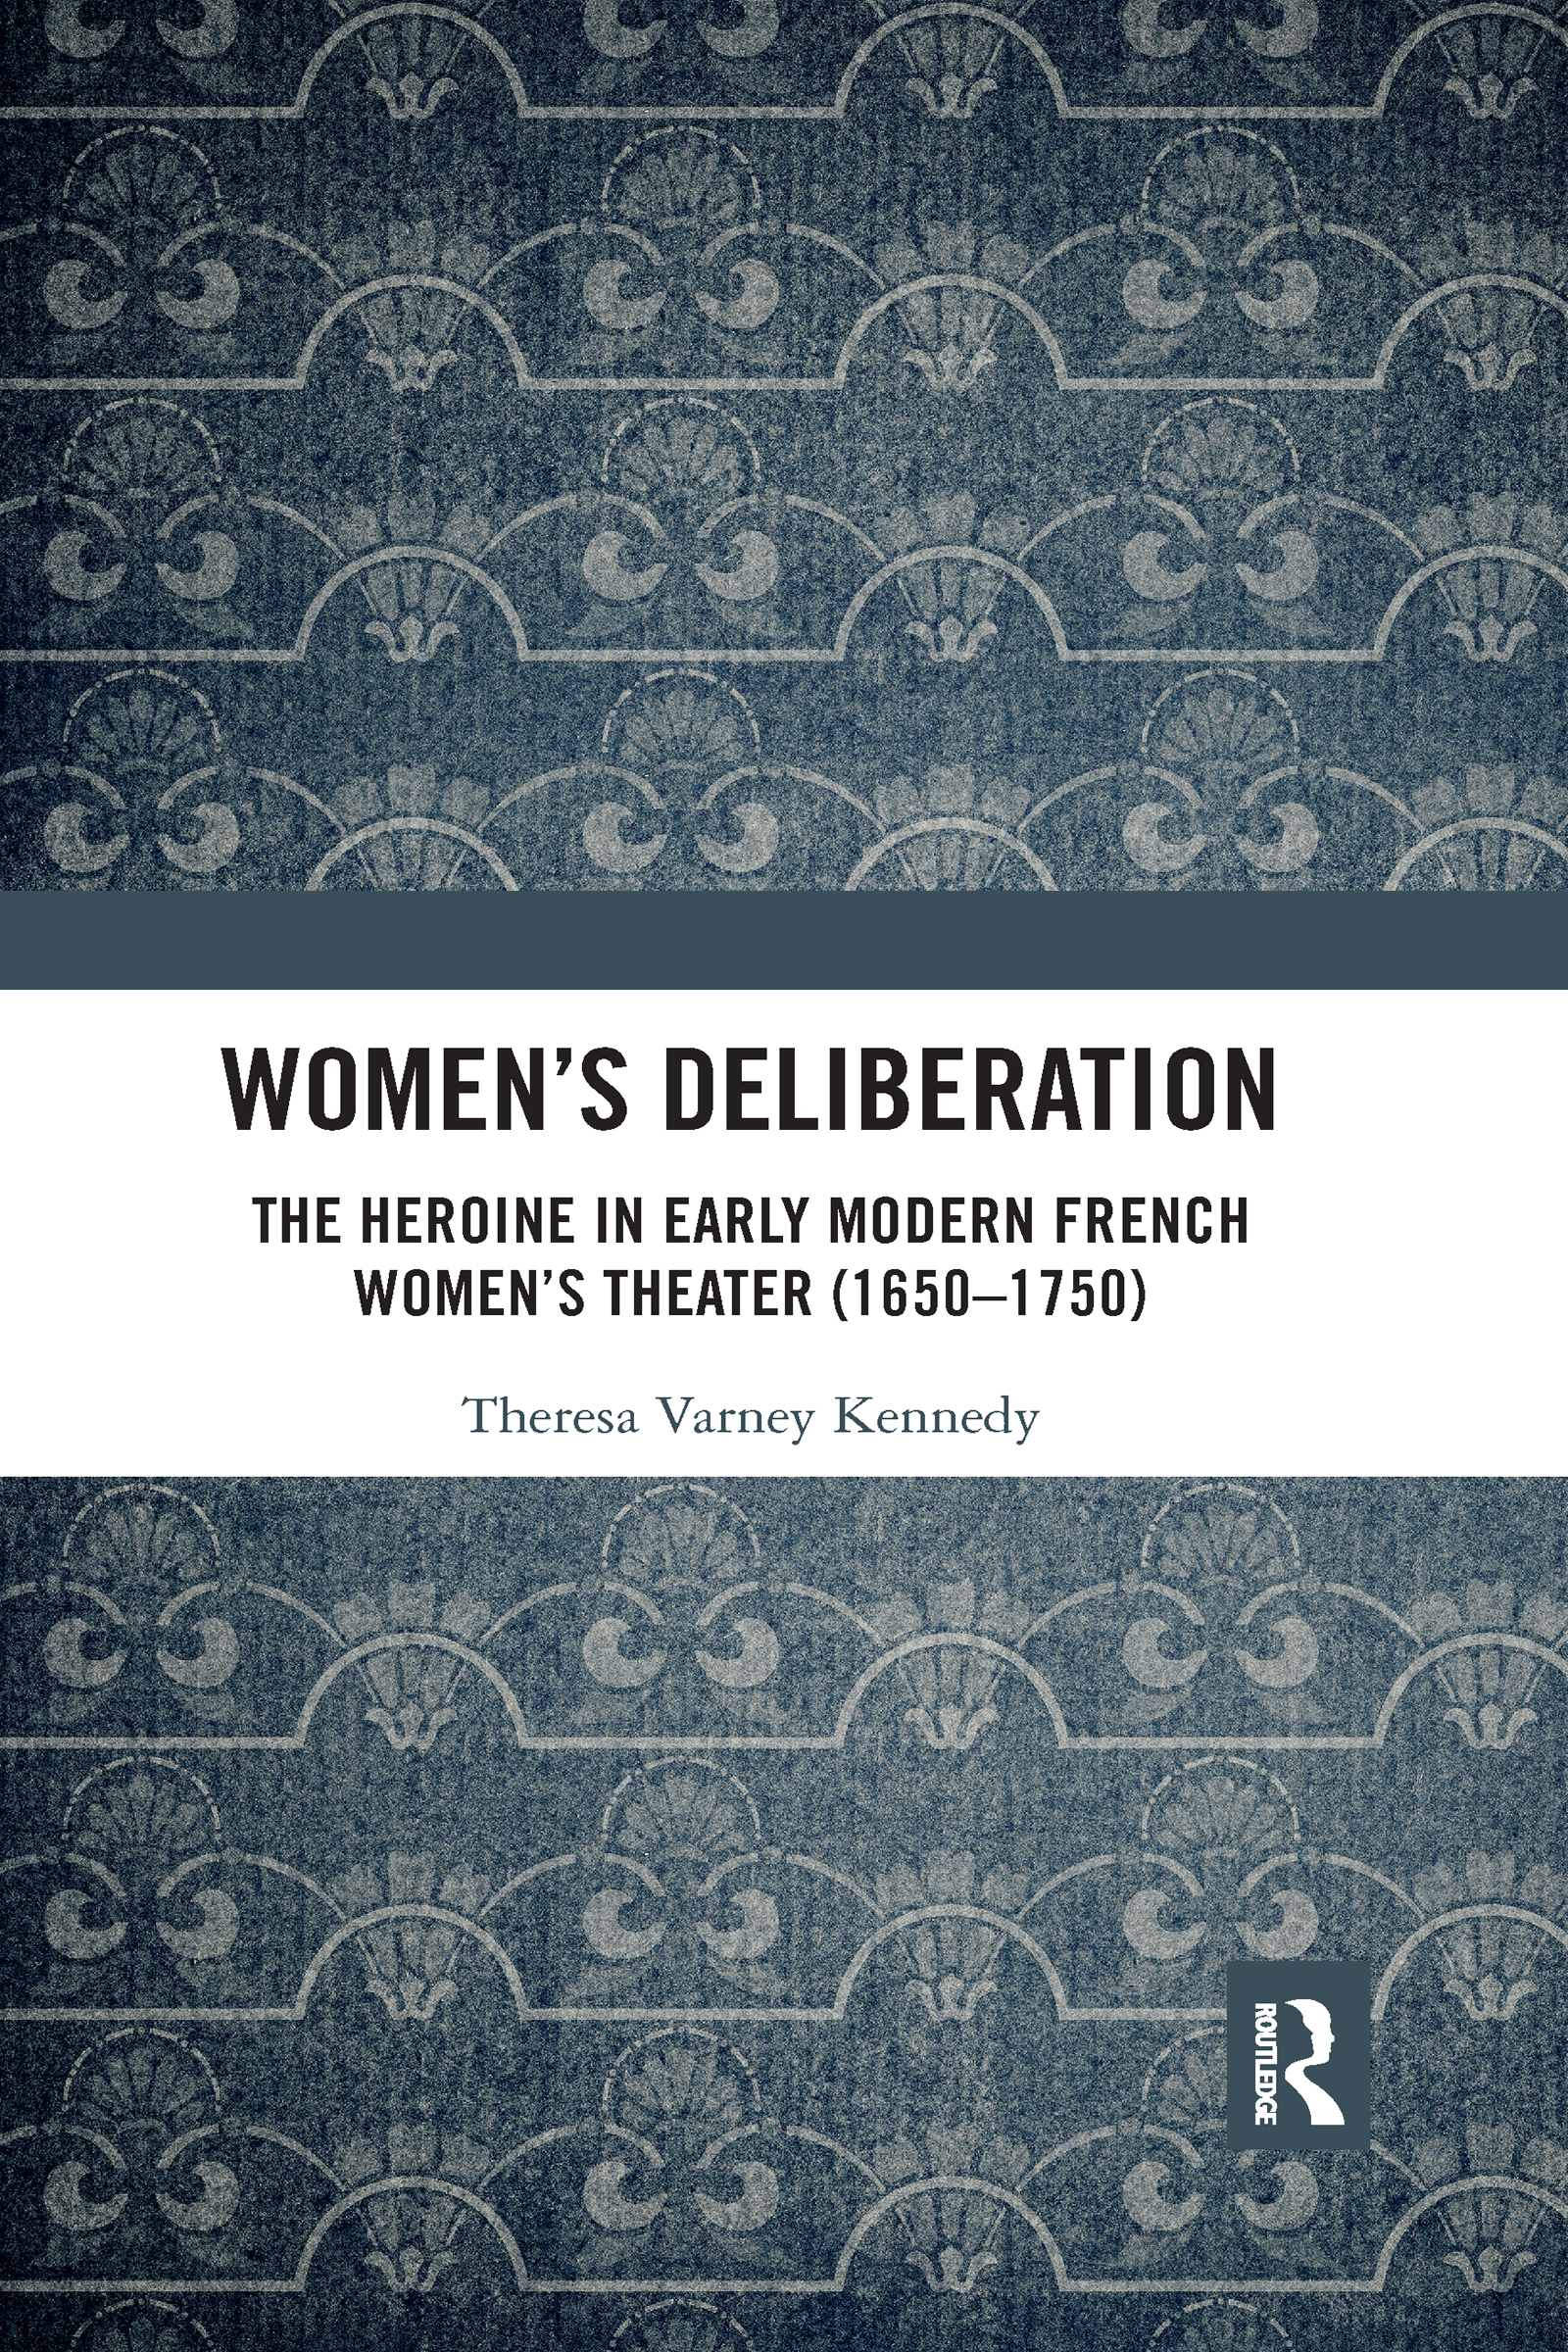 Women's Deliberation: The Heroine in Early Modern French Women's Theater (1650–1750)